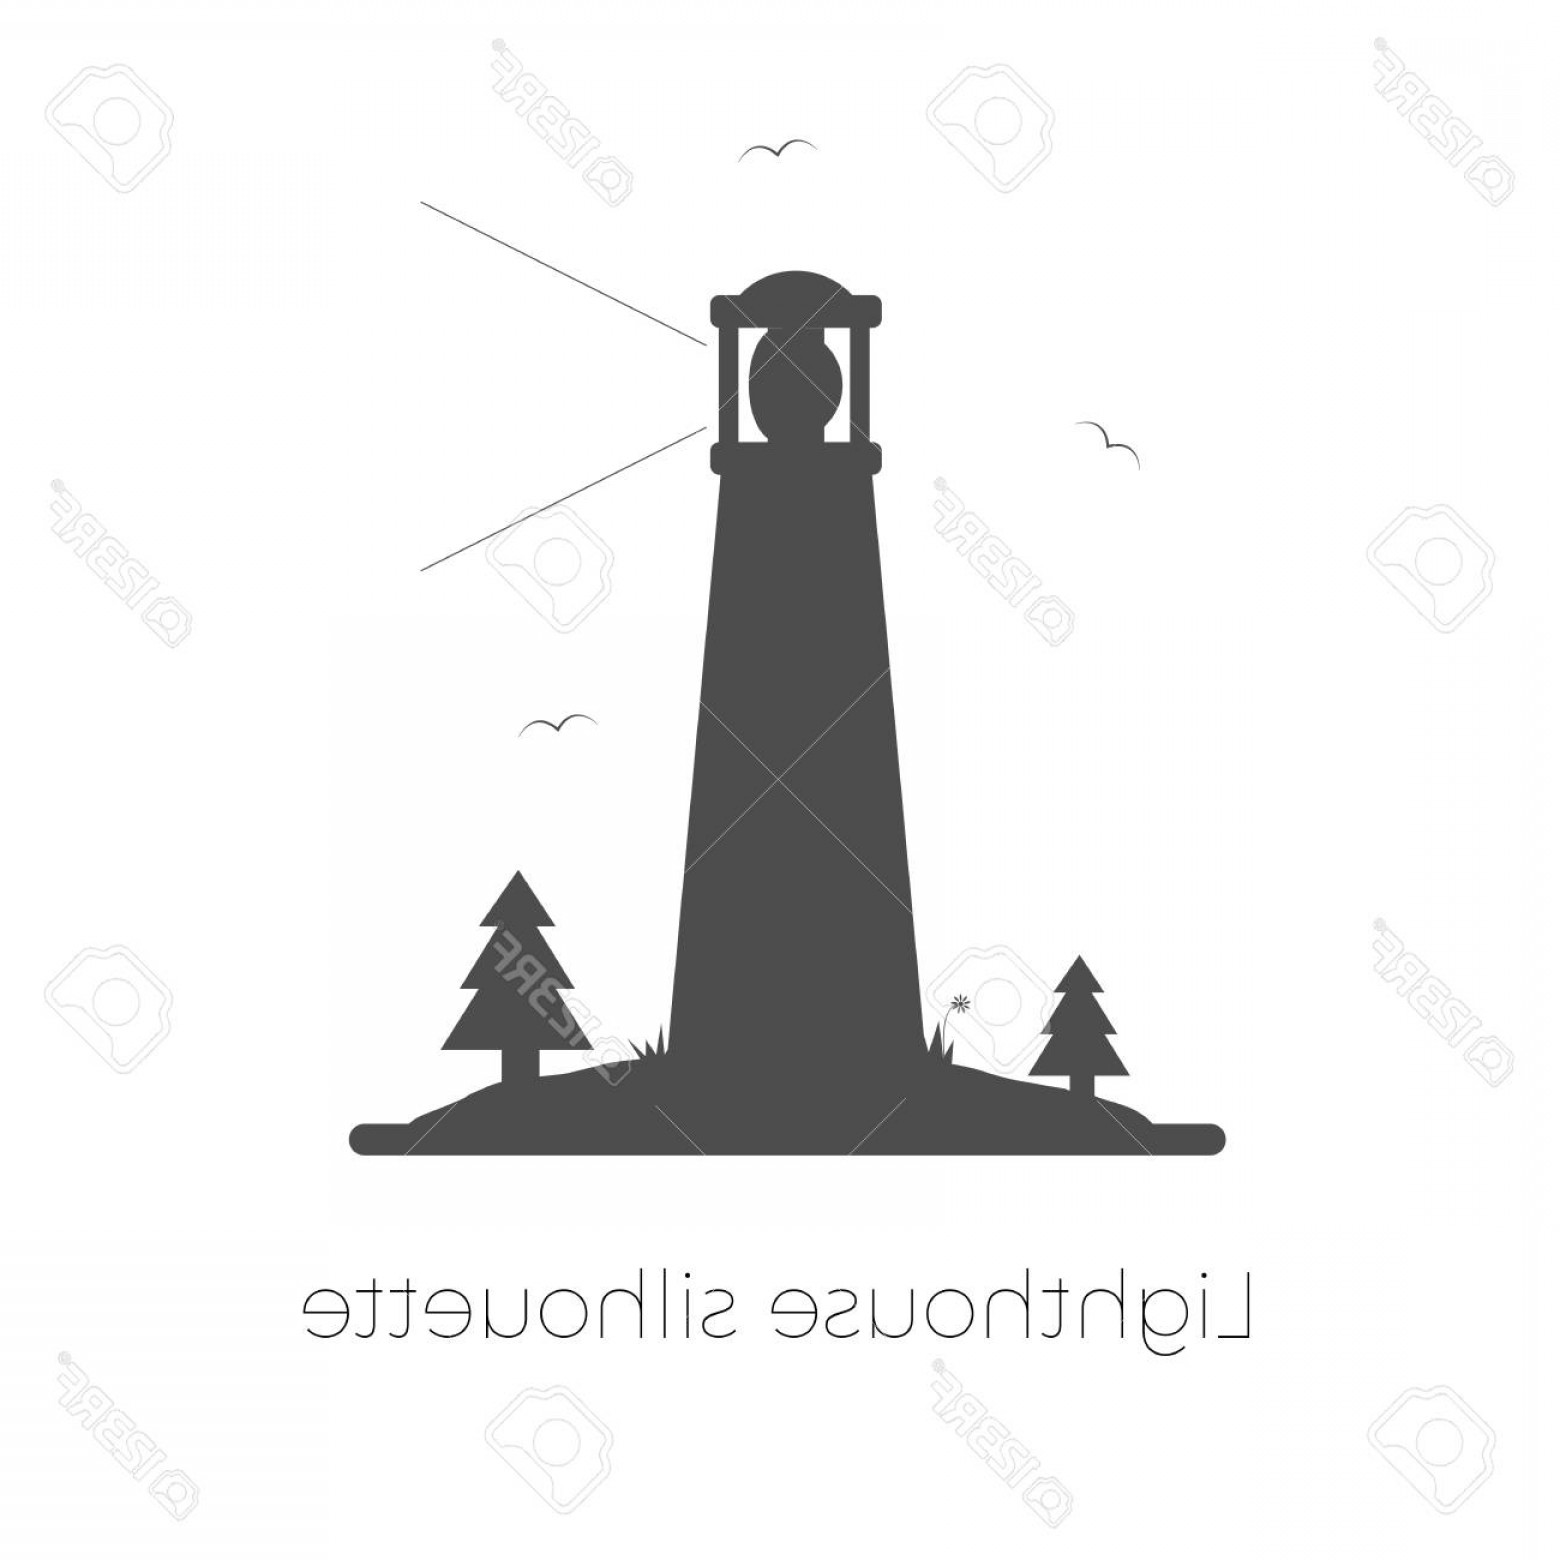 Lighthouse Beacon Silhouette Vector: Photostock Vector Lighthouse Silhouette Vector Illustration Beacon On Island With Trees Grass And Seagulls Isolated On